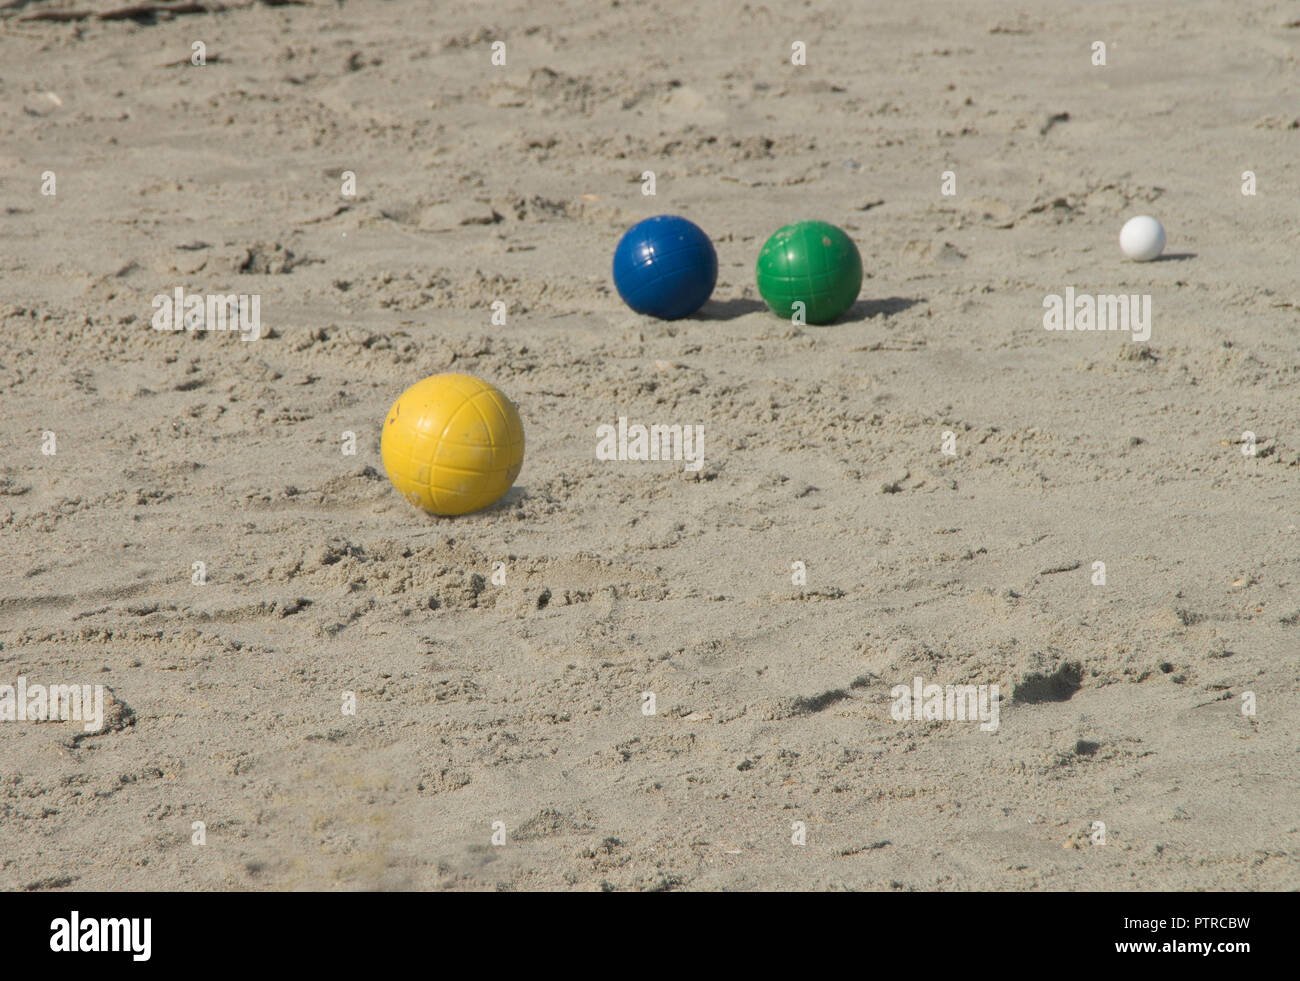 Boche Balls lay on the sand near a campground in Myrtle Beach South Carolina - Stock Image